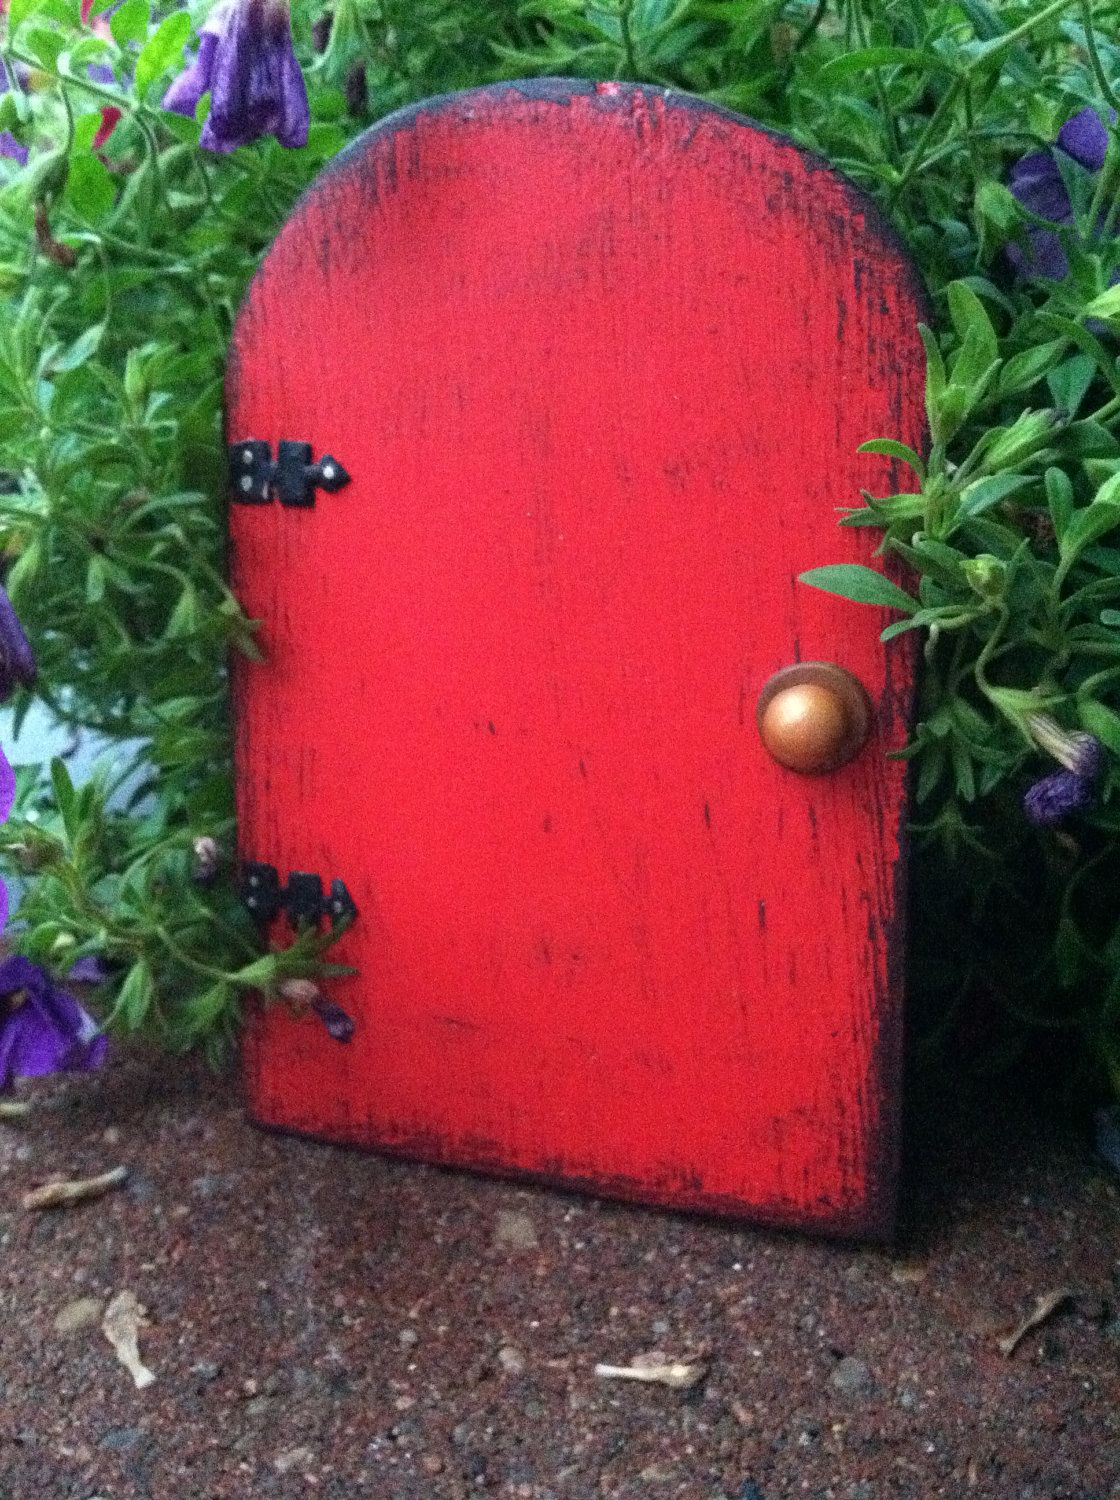 Red Fairy Door Valentine Day Garden Decor Gifts Under 20 Birthday Party Favors Outdoor READY To SHIP By WoodenBLING On Etsy